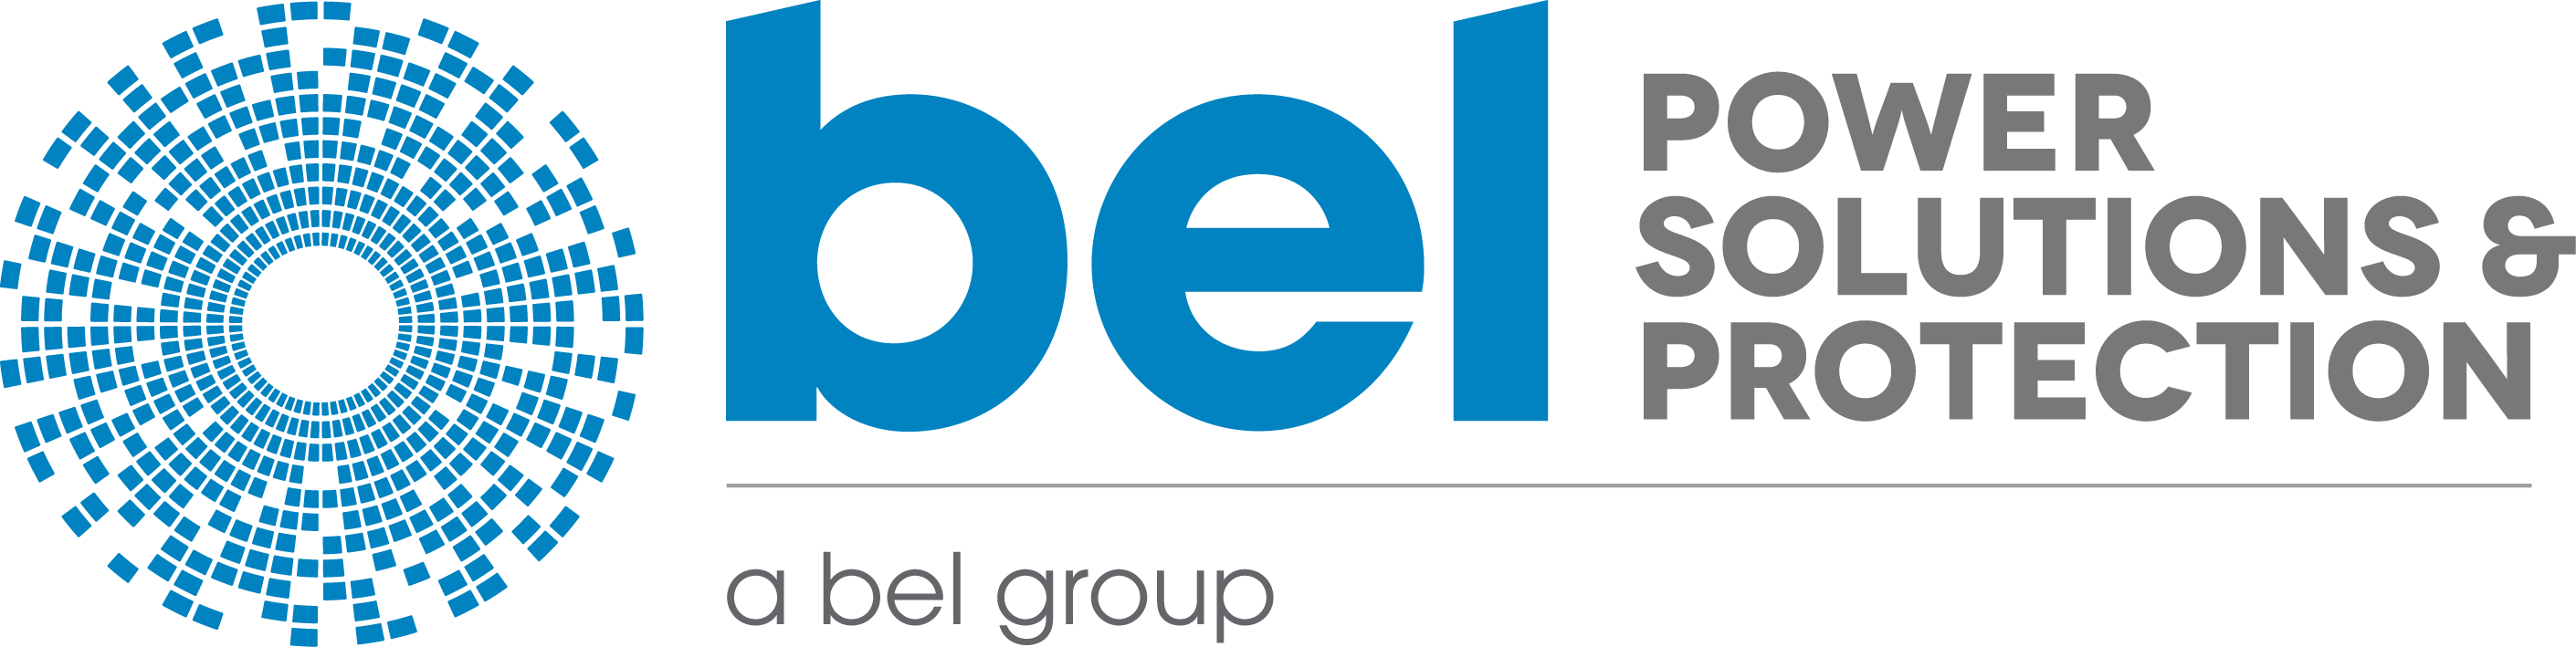 Bel Power Solutions logo